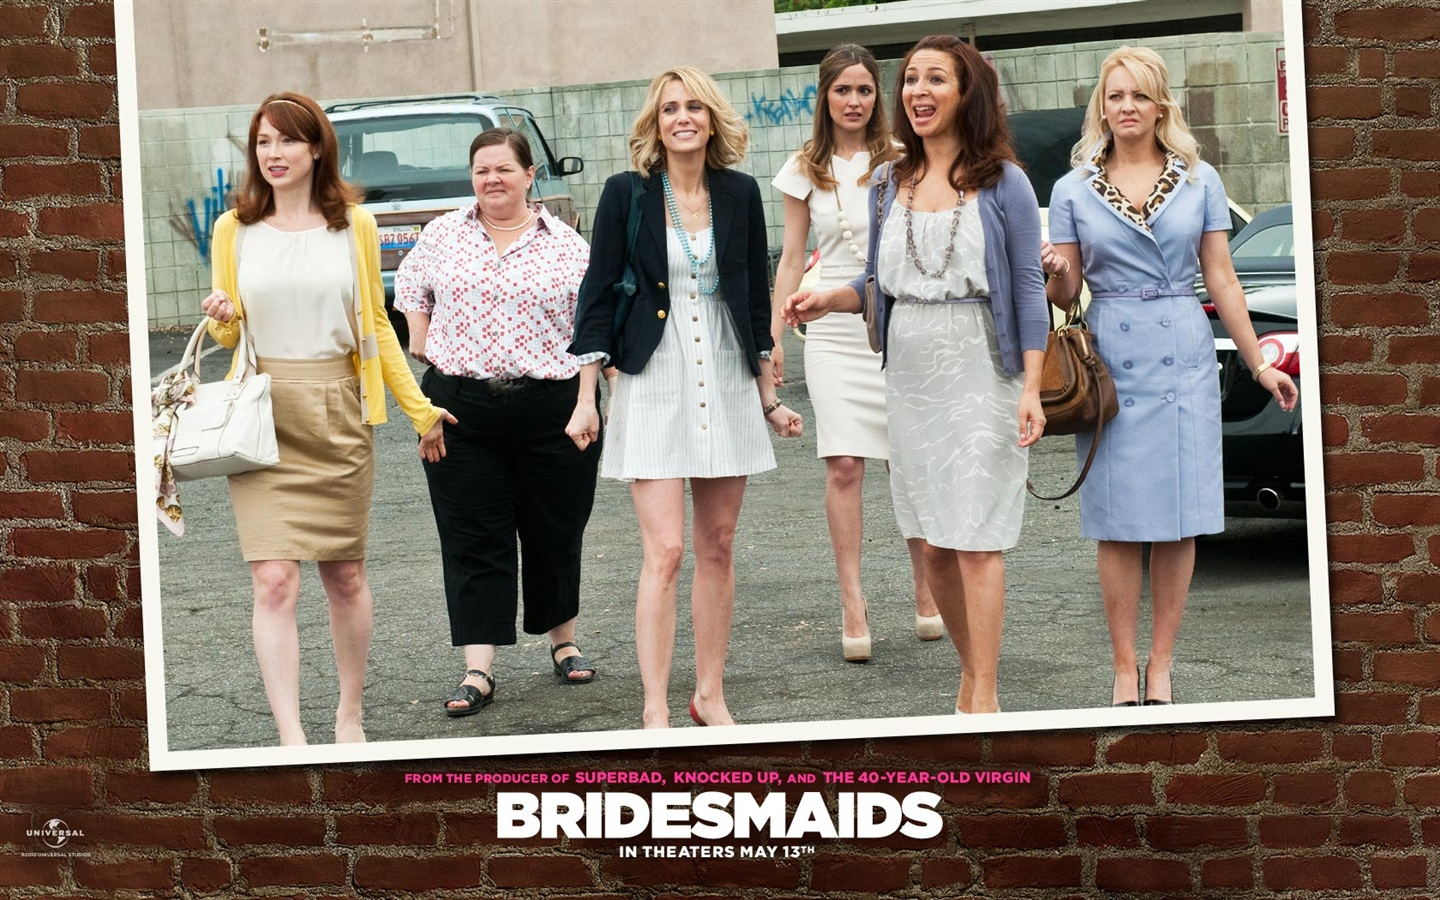 Kristen Wiig in Bridesmaids wallpaper - 1440x900